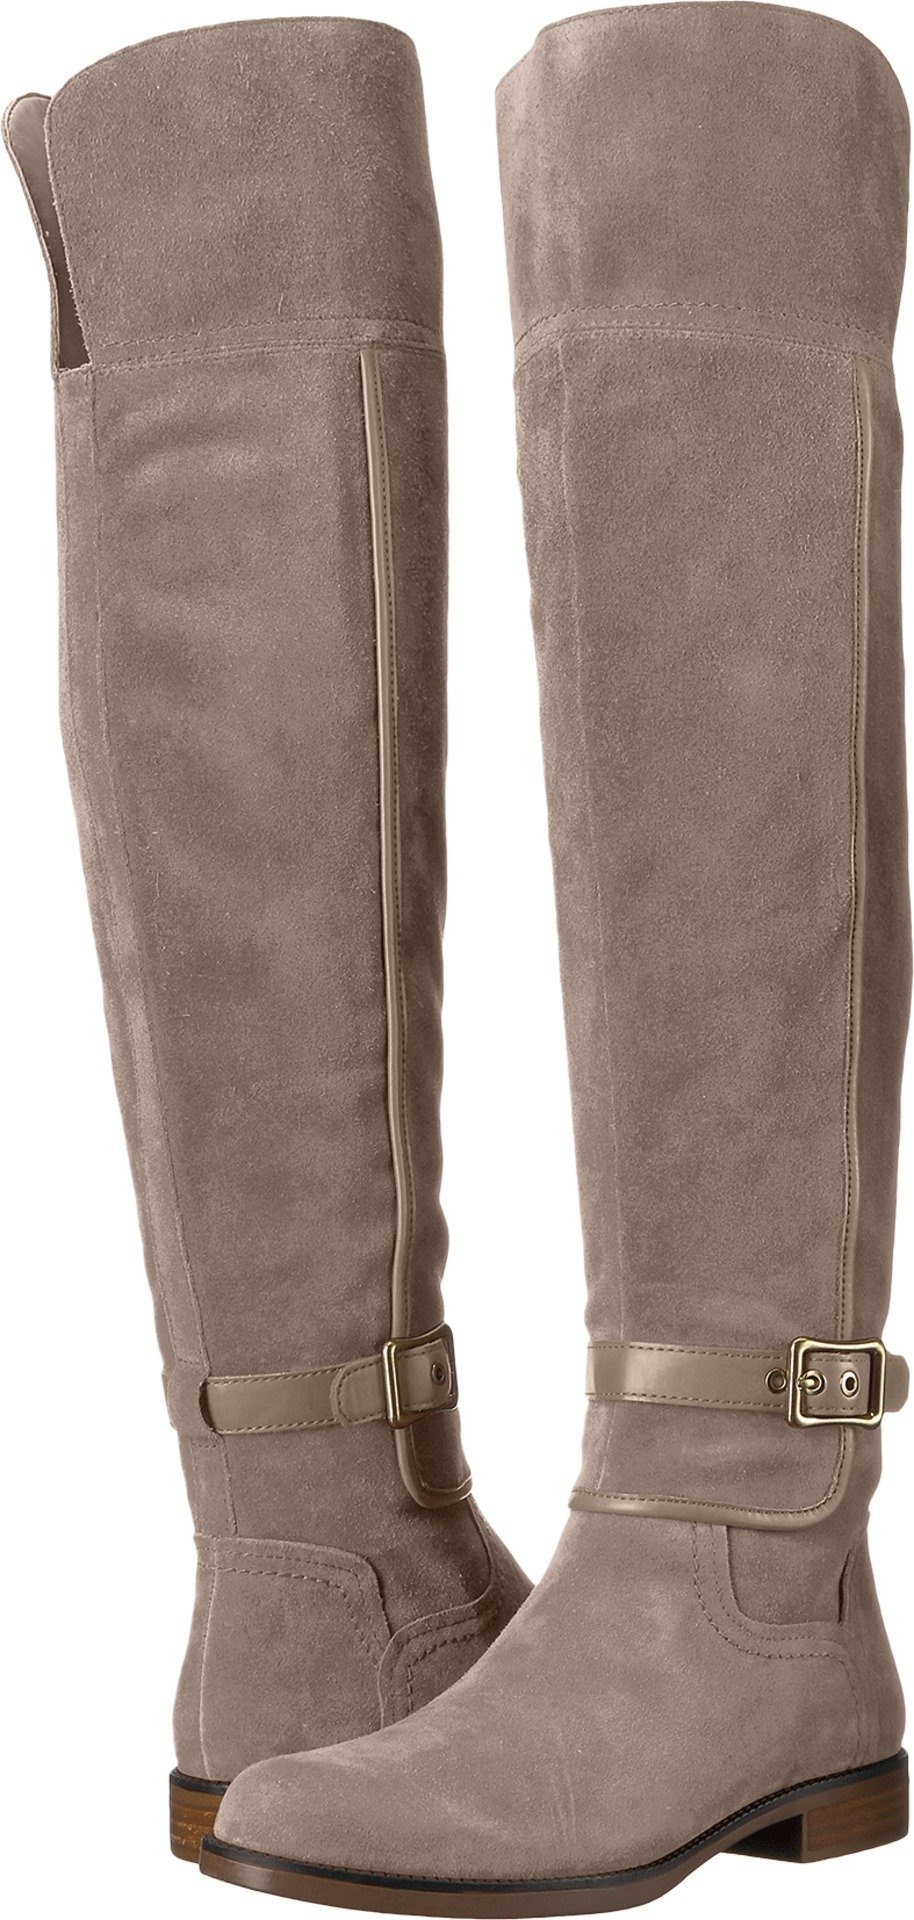 Franco Sarto Women's Crimson Over The Knee Boot, Cocco, 8.5 M US